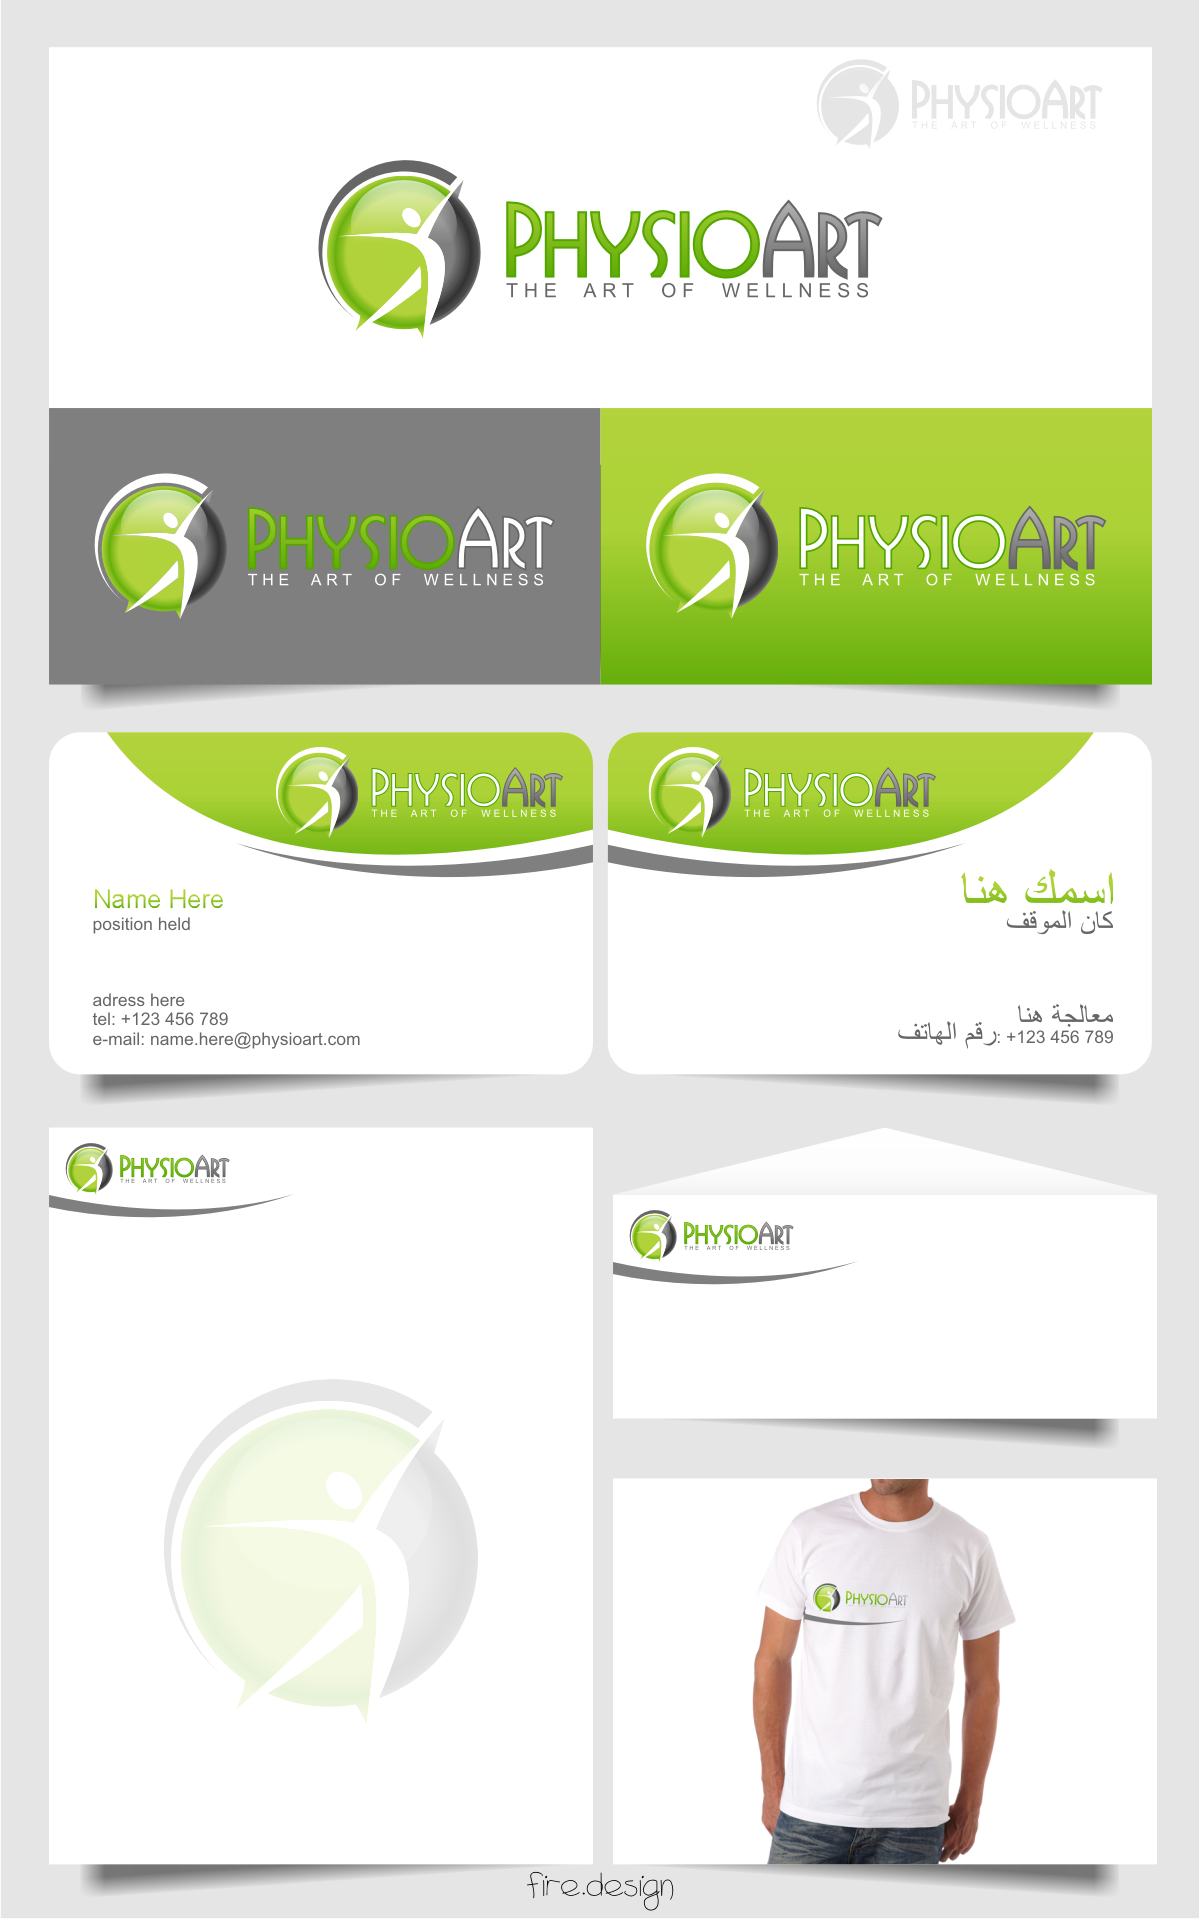 logo and business card for PhysioArt